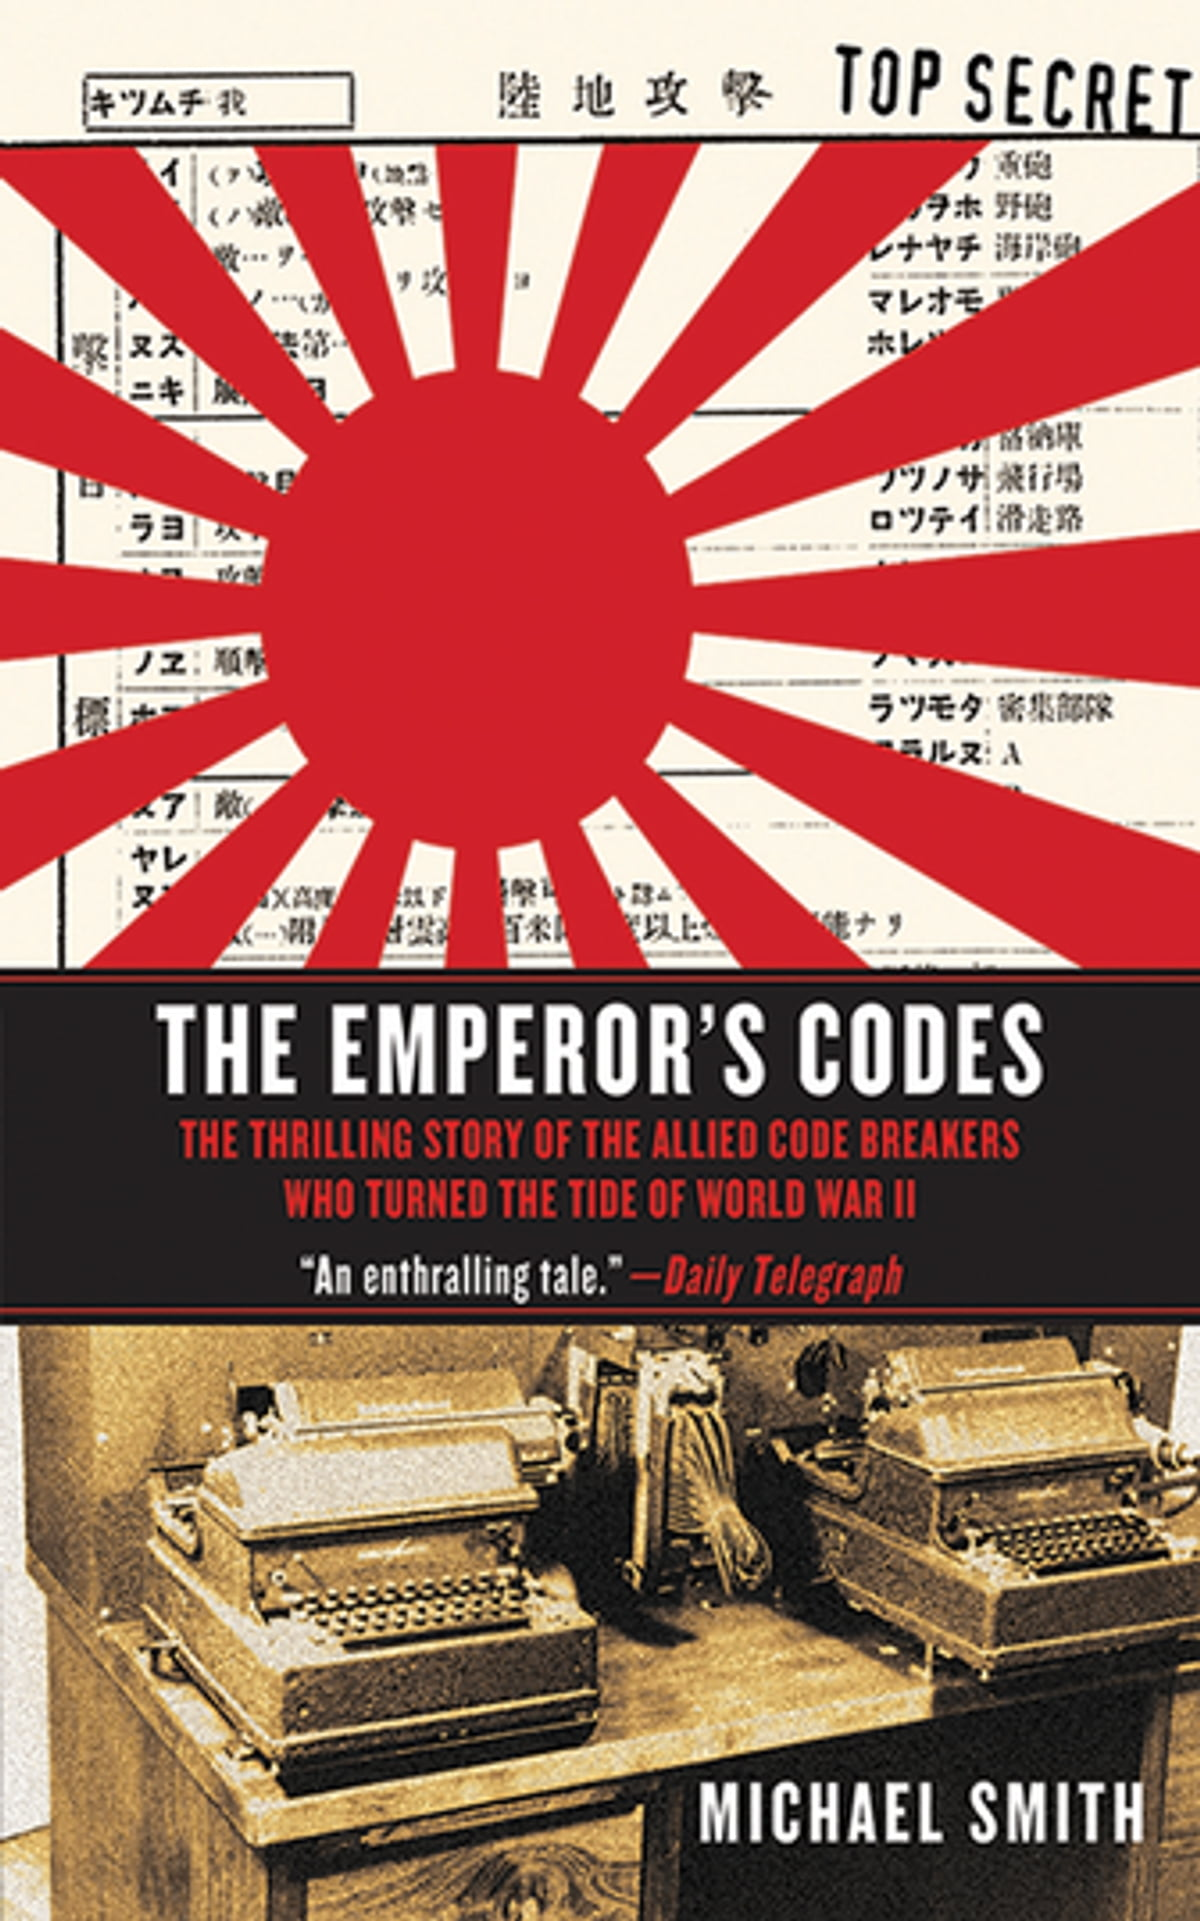 The Emperor's Codes Ebook By Michael Smith  9781628721386  Rakuten Kobo